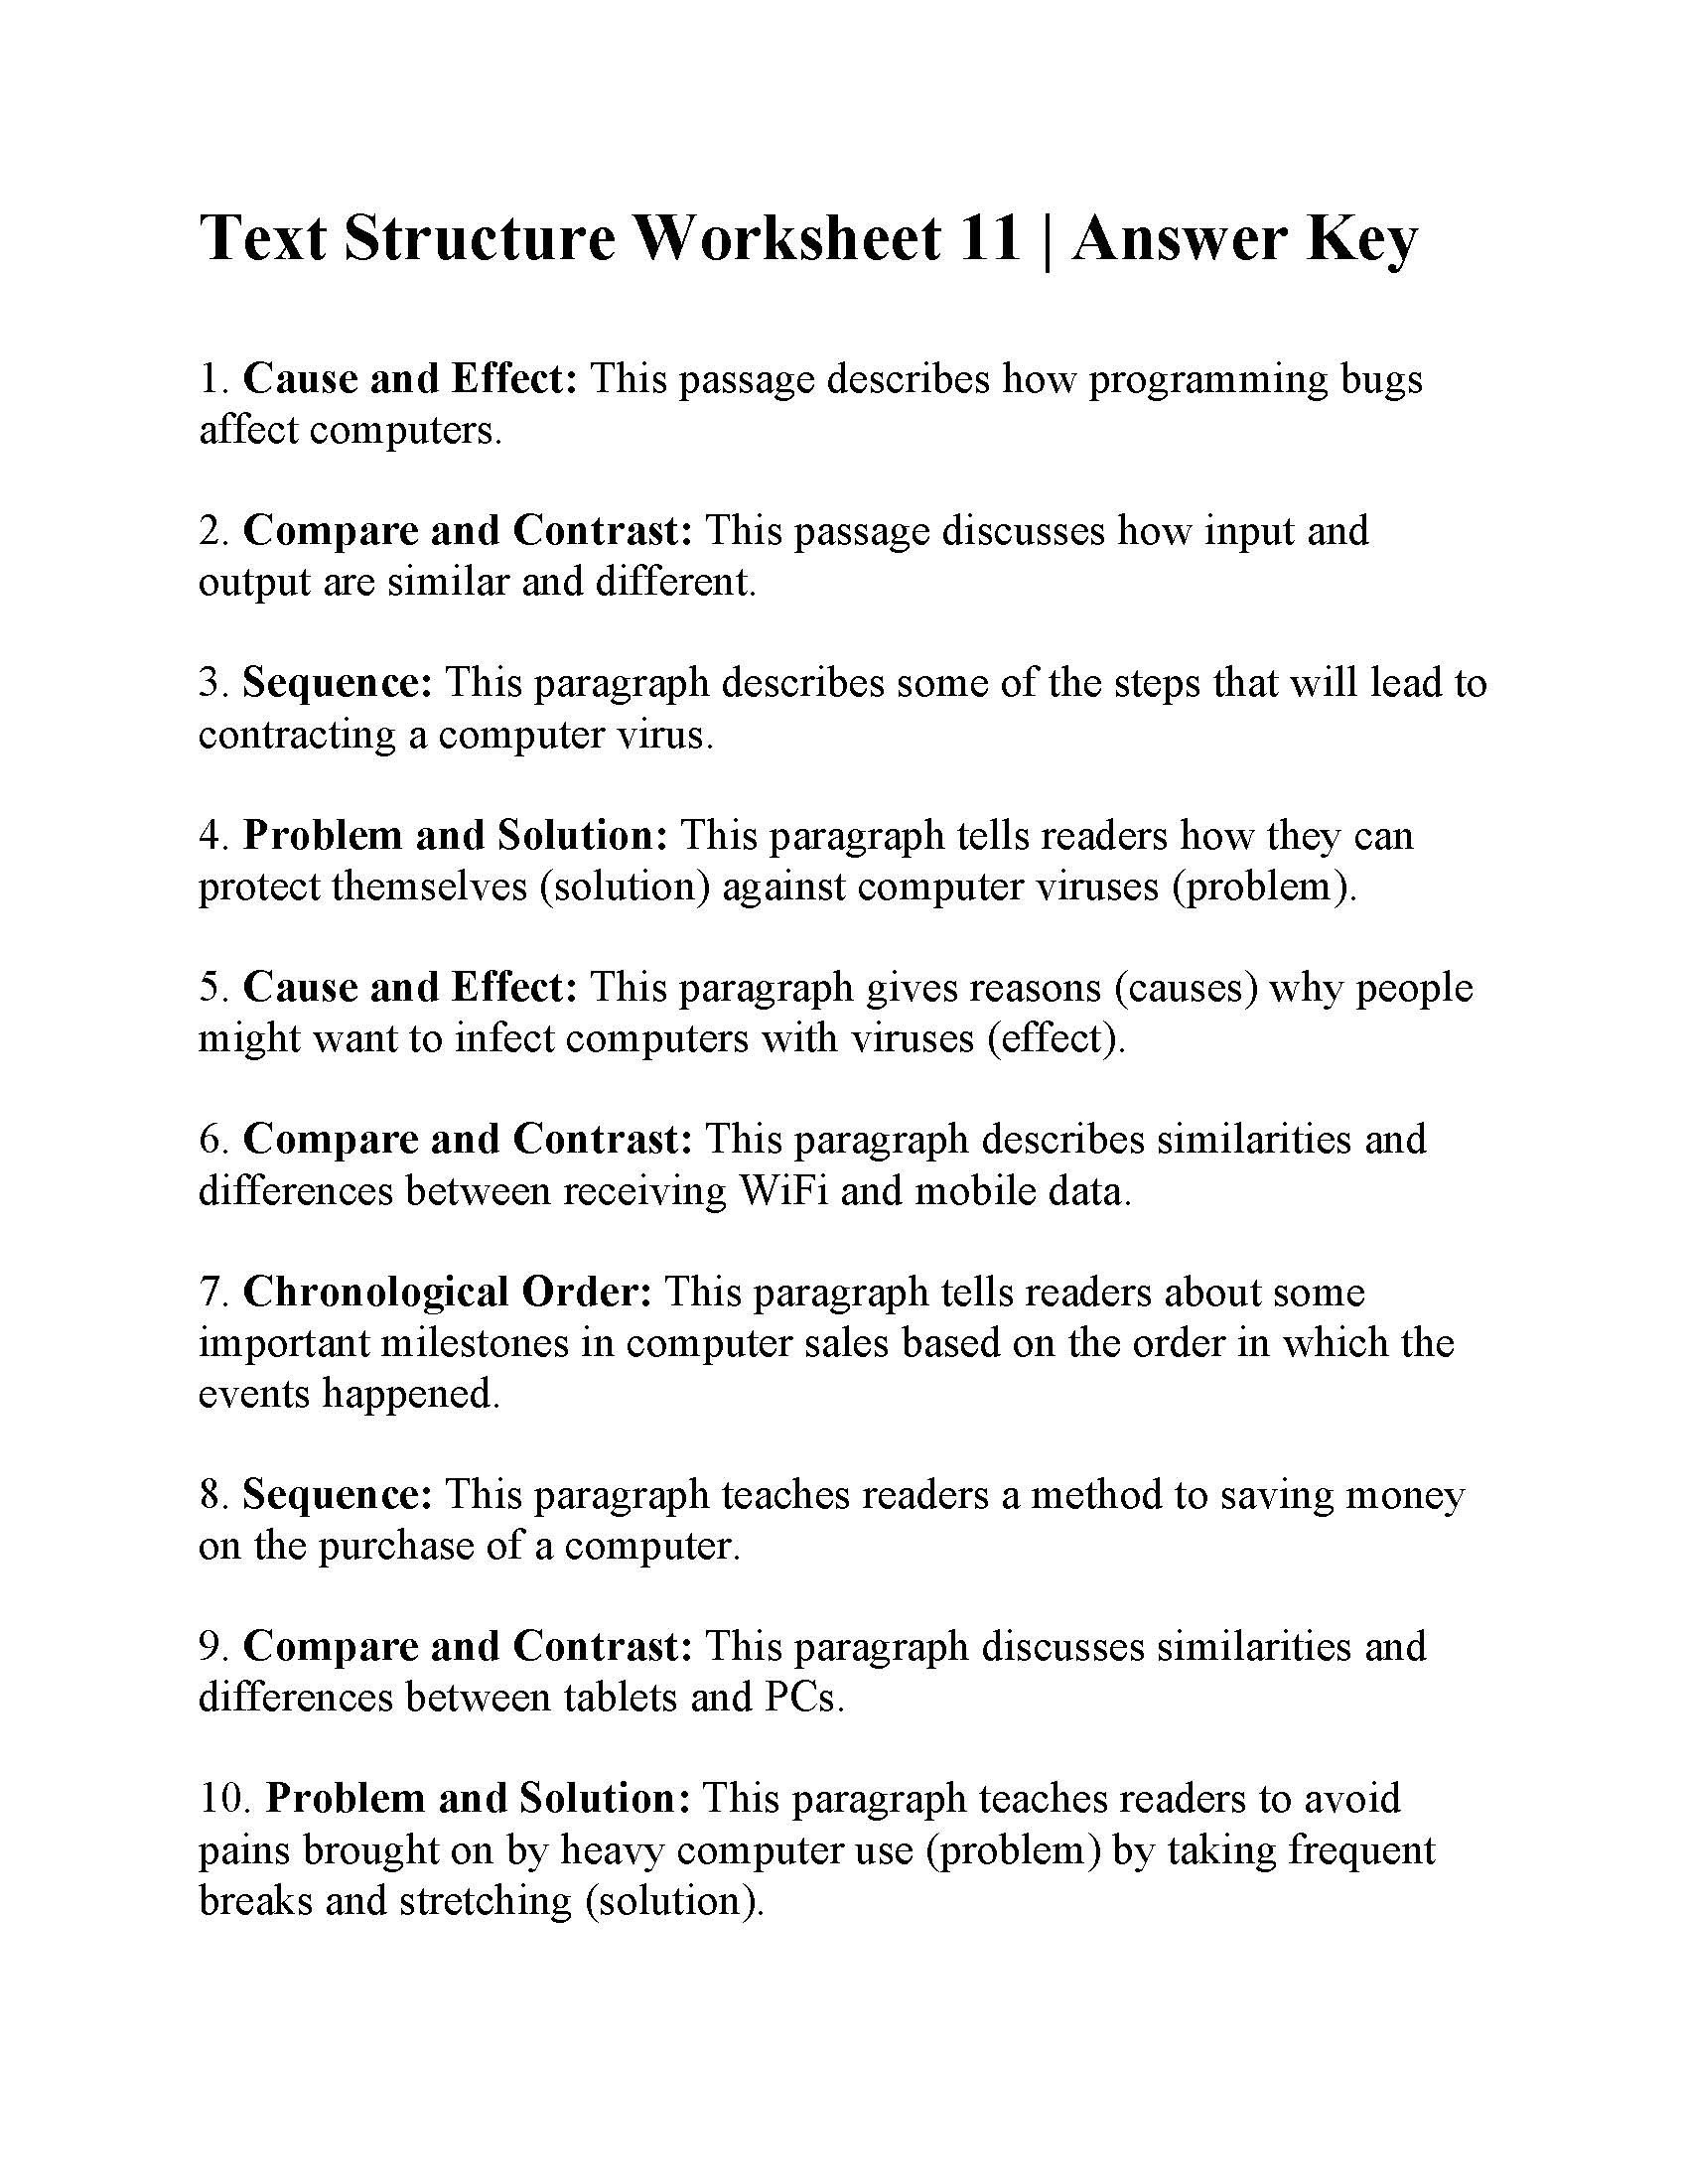 Text Structure Practice Worksheets Text Structure Worksheet Answers Ereading Worksheets Kumon